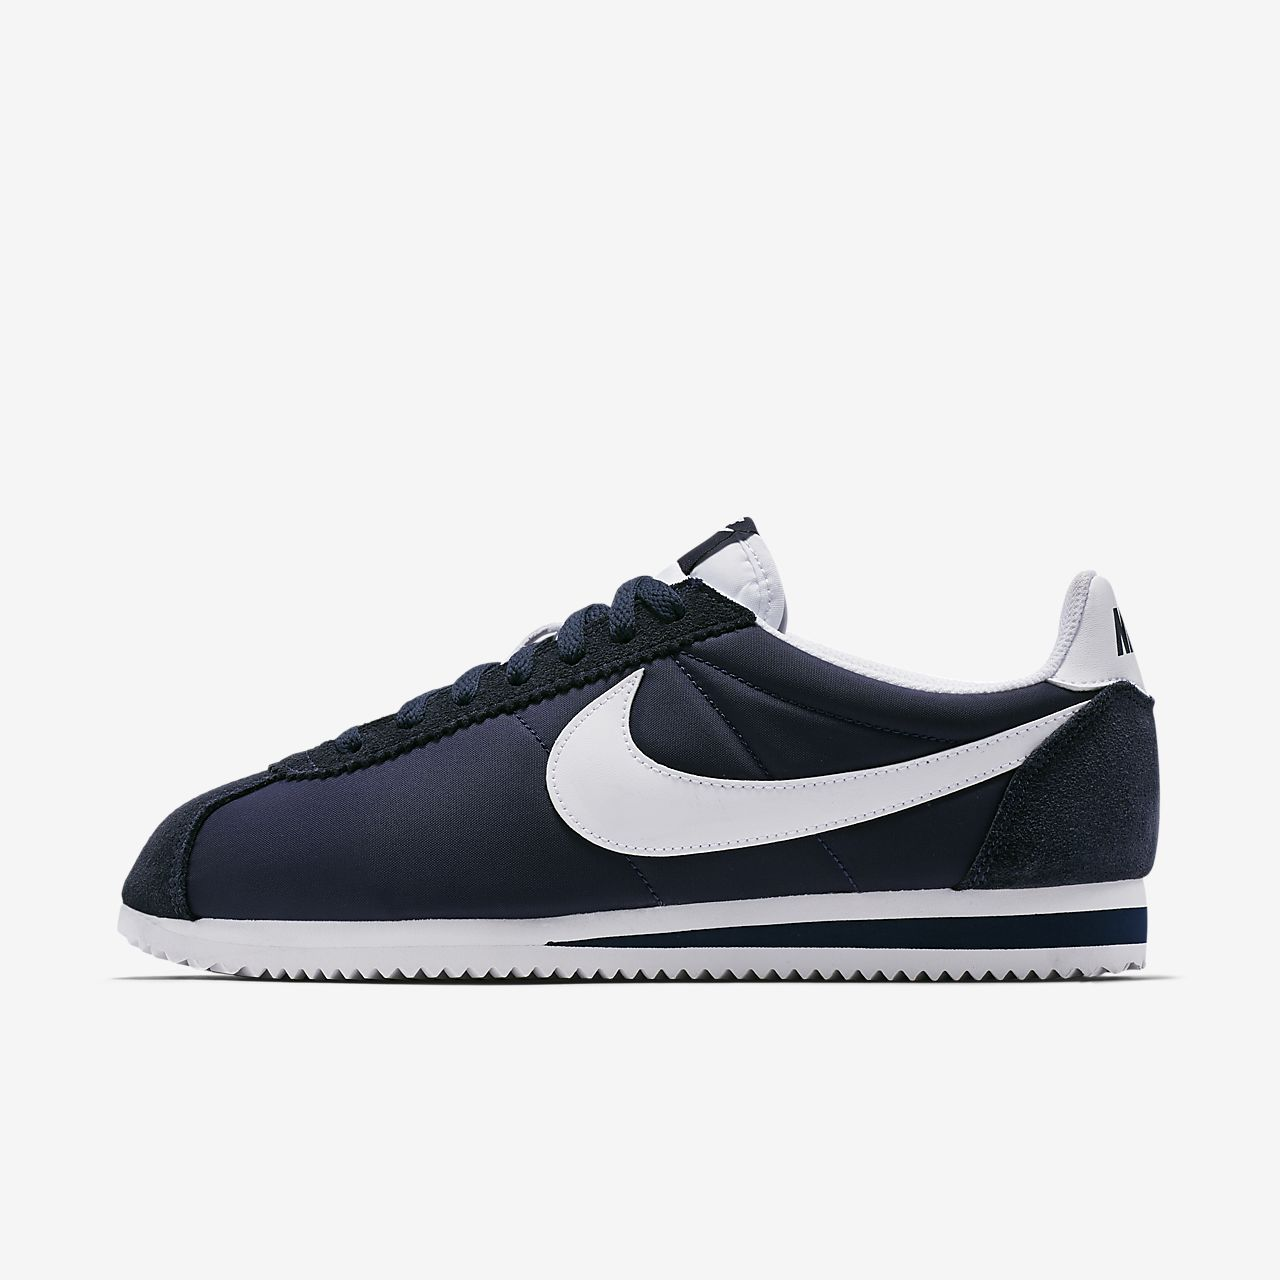 Nike Homme Nike Classic Cortez Prem Chaussures blanche